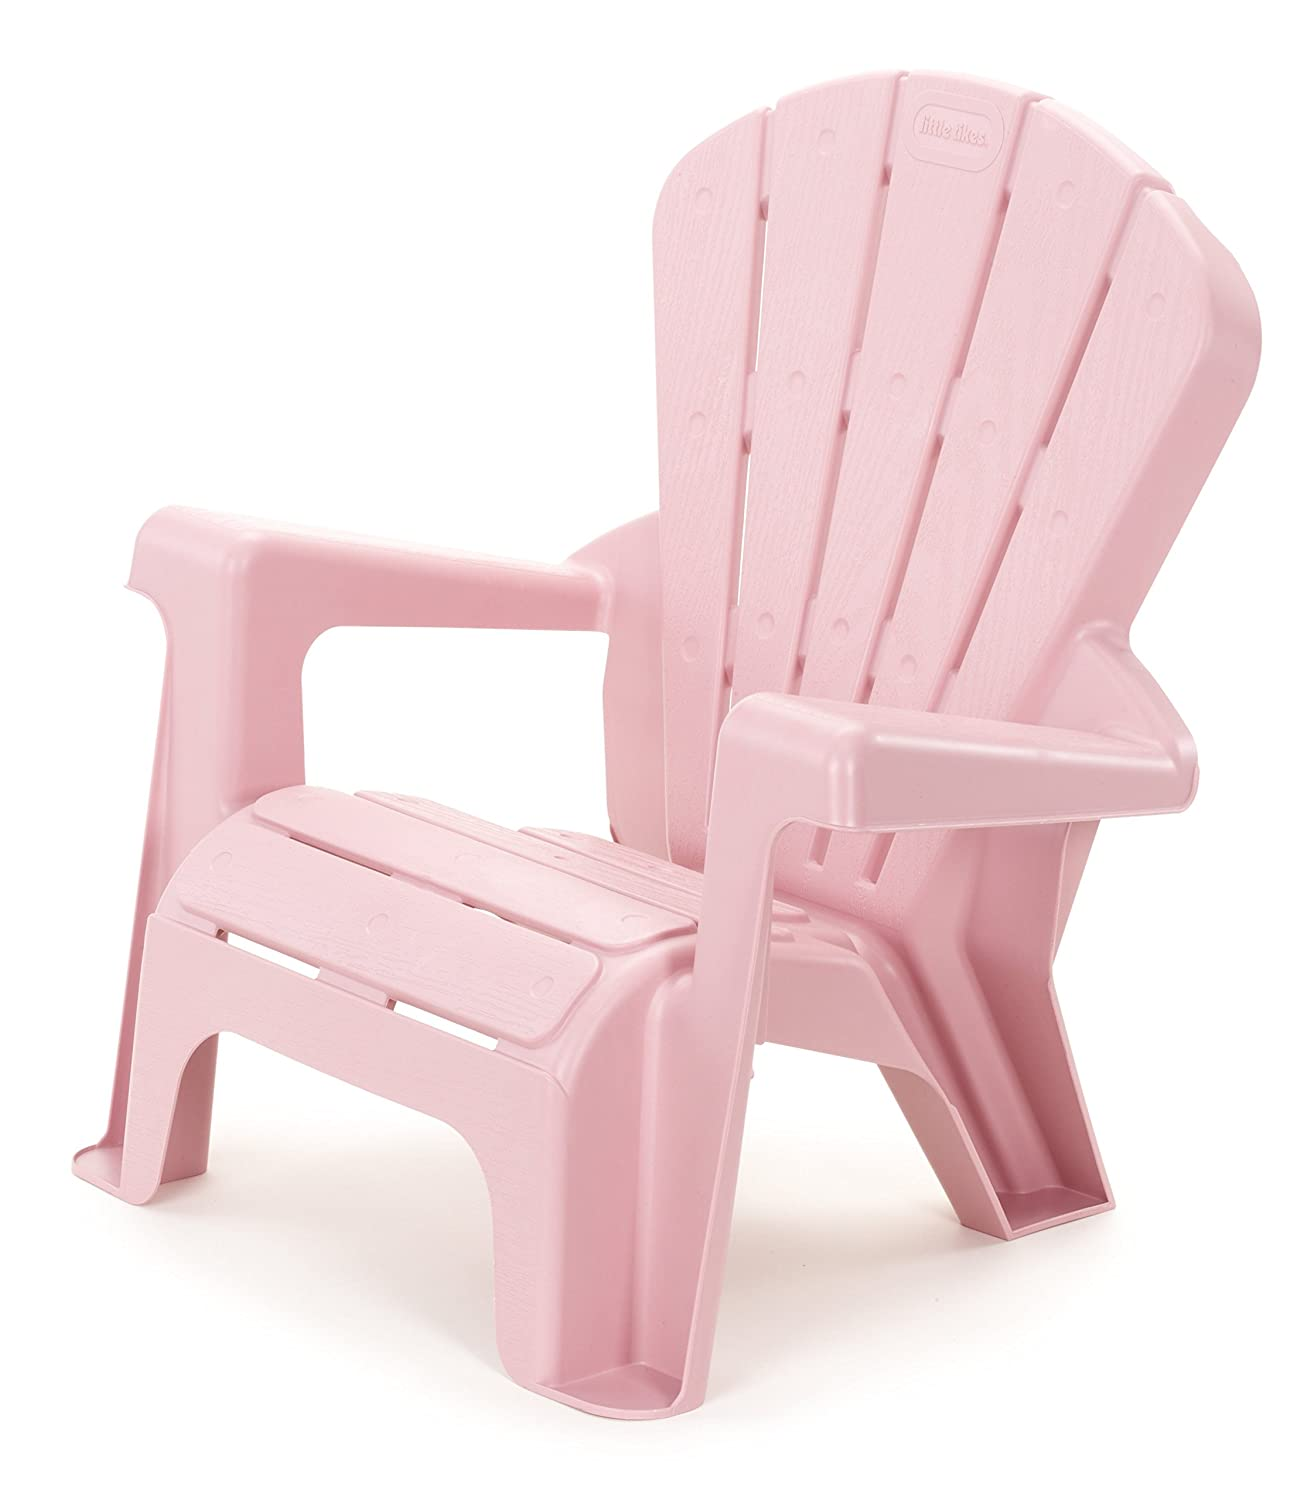 Amazon Little Tikes Garden Chair Pink Kitchen & Dining